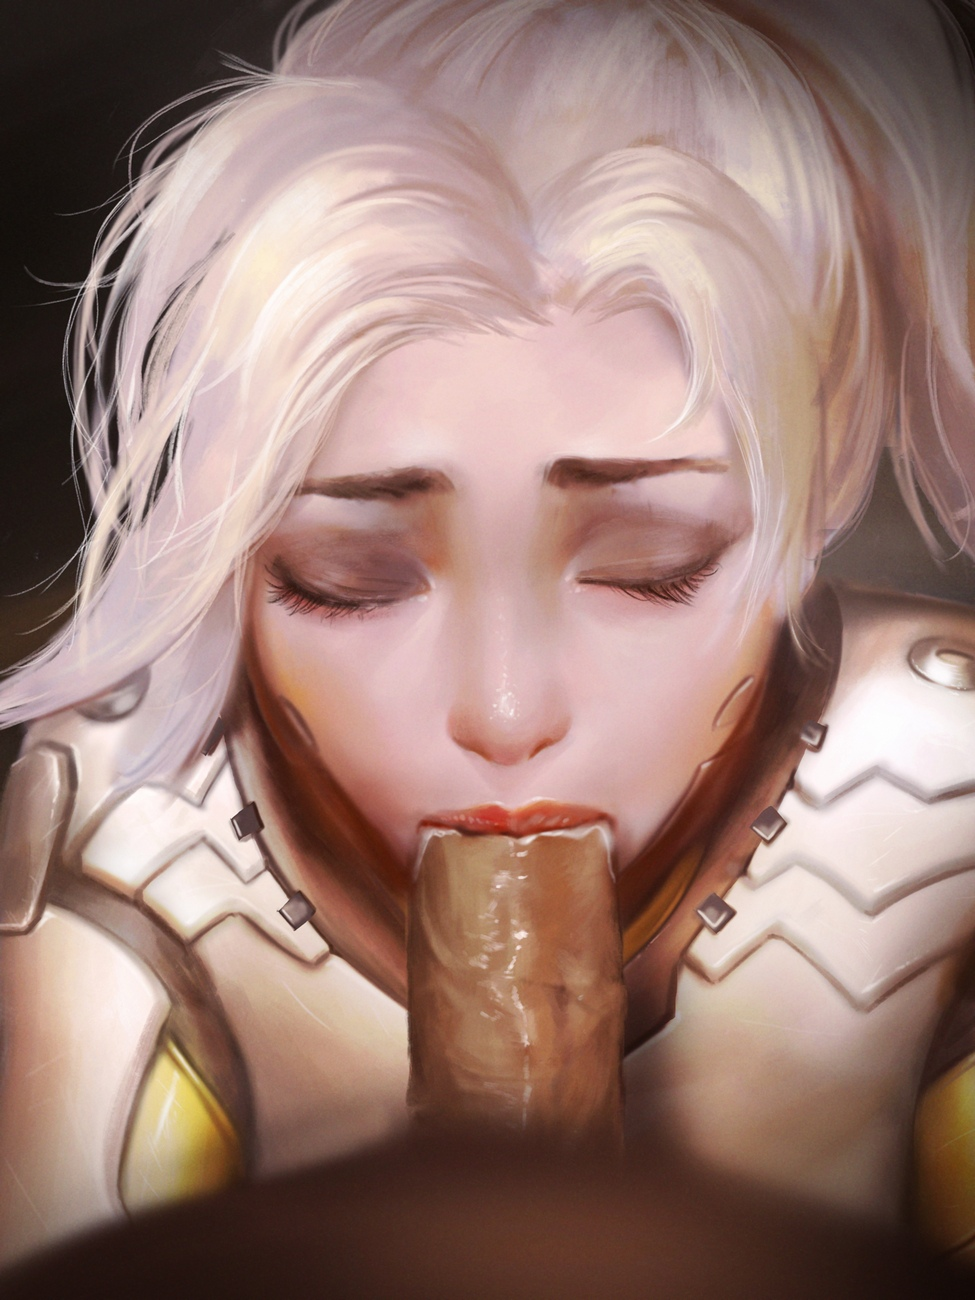 Mercy-The-First-Audition 15 free sex comic